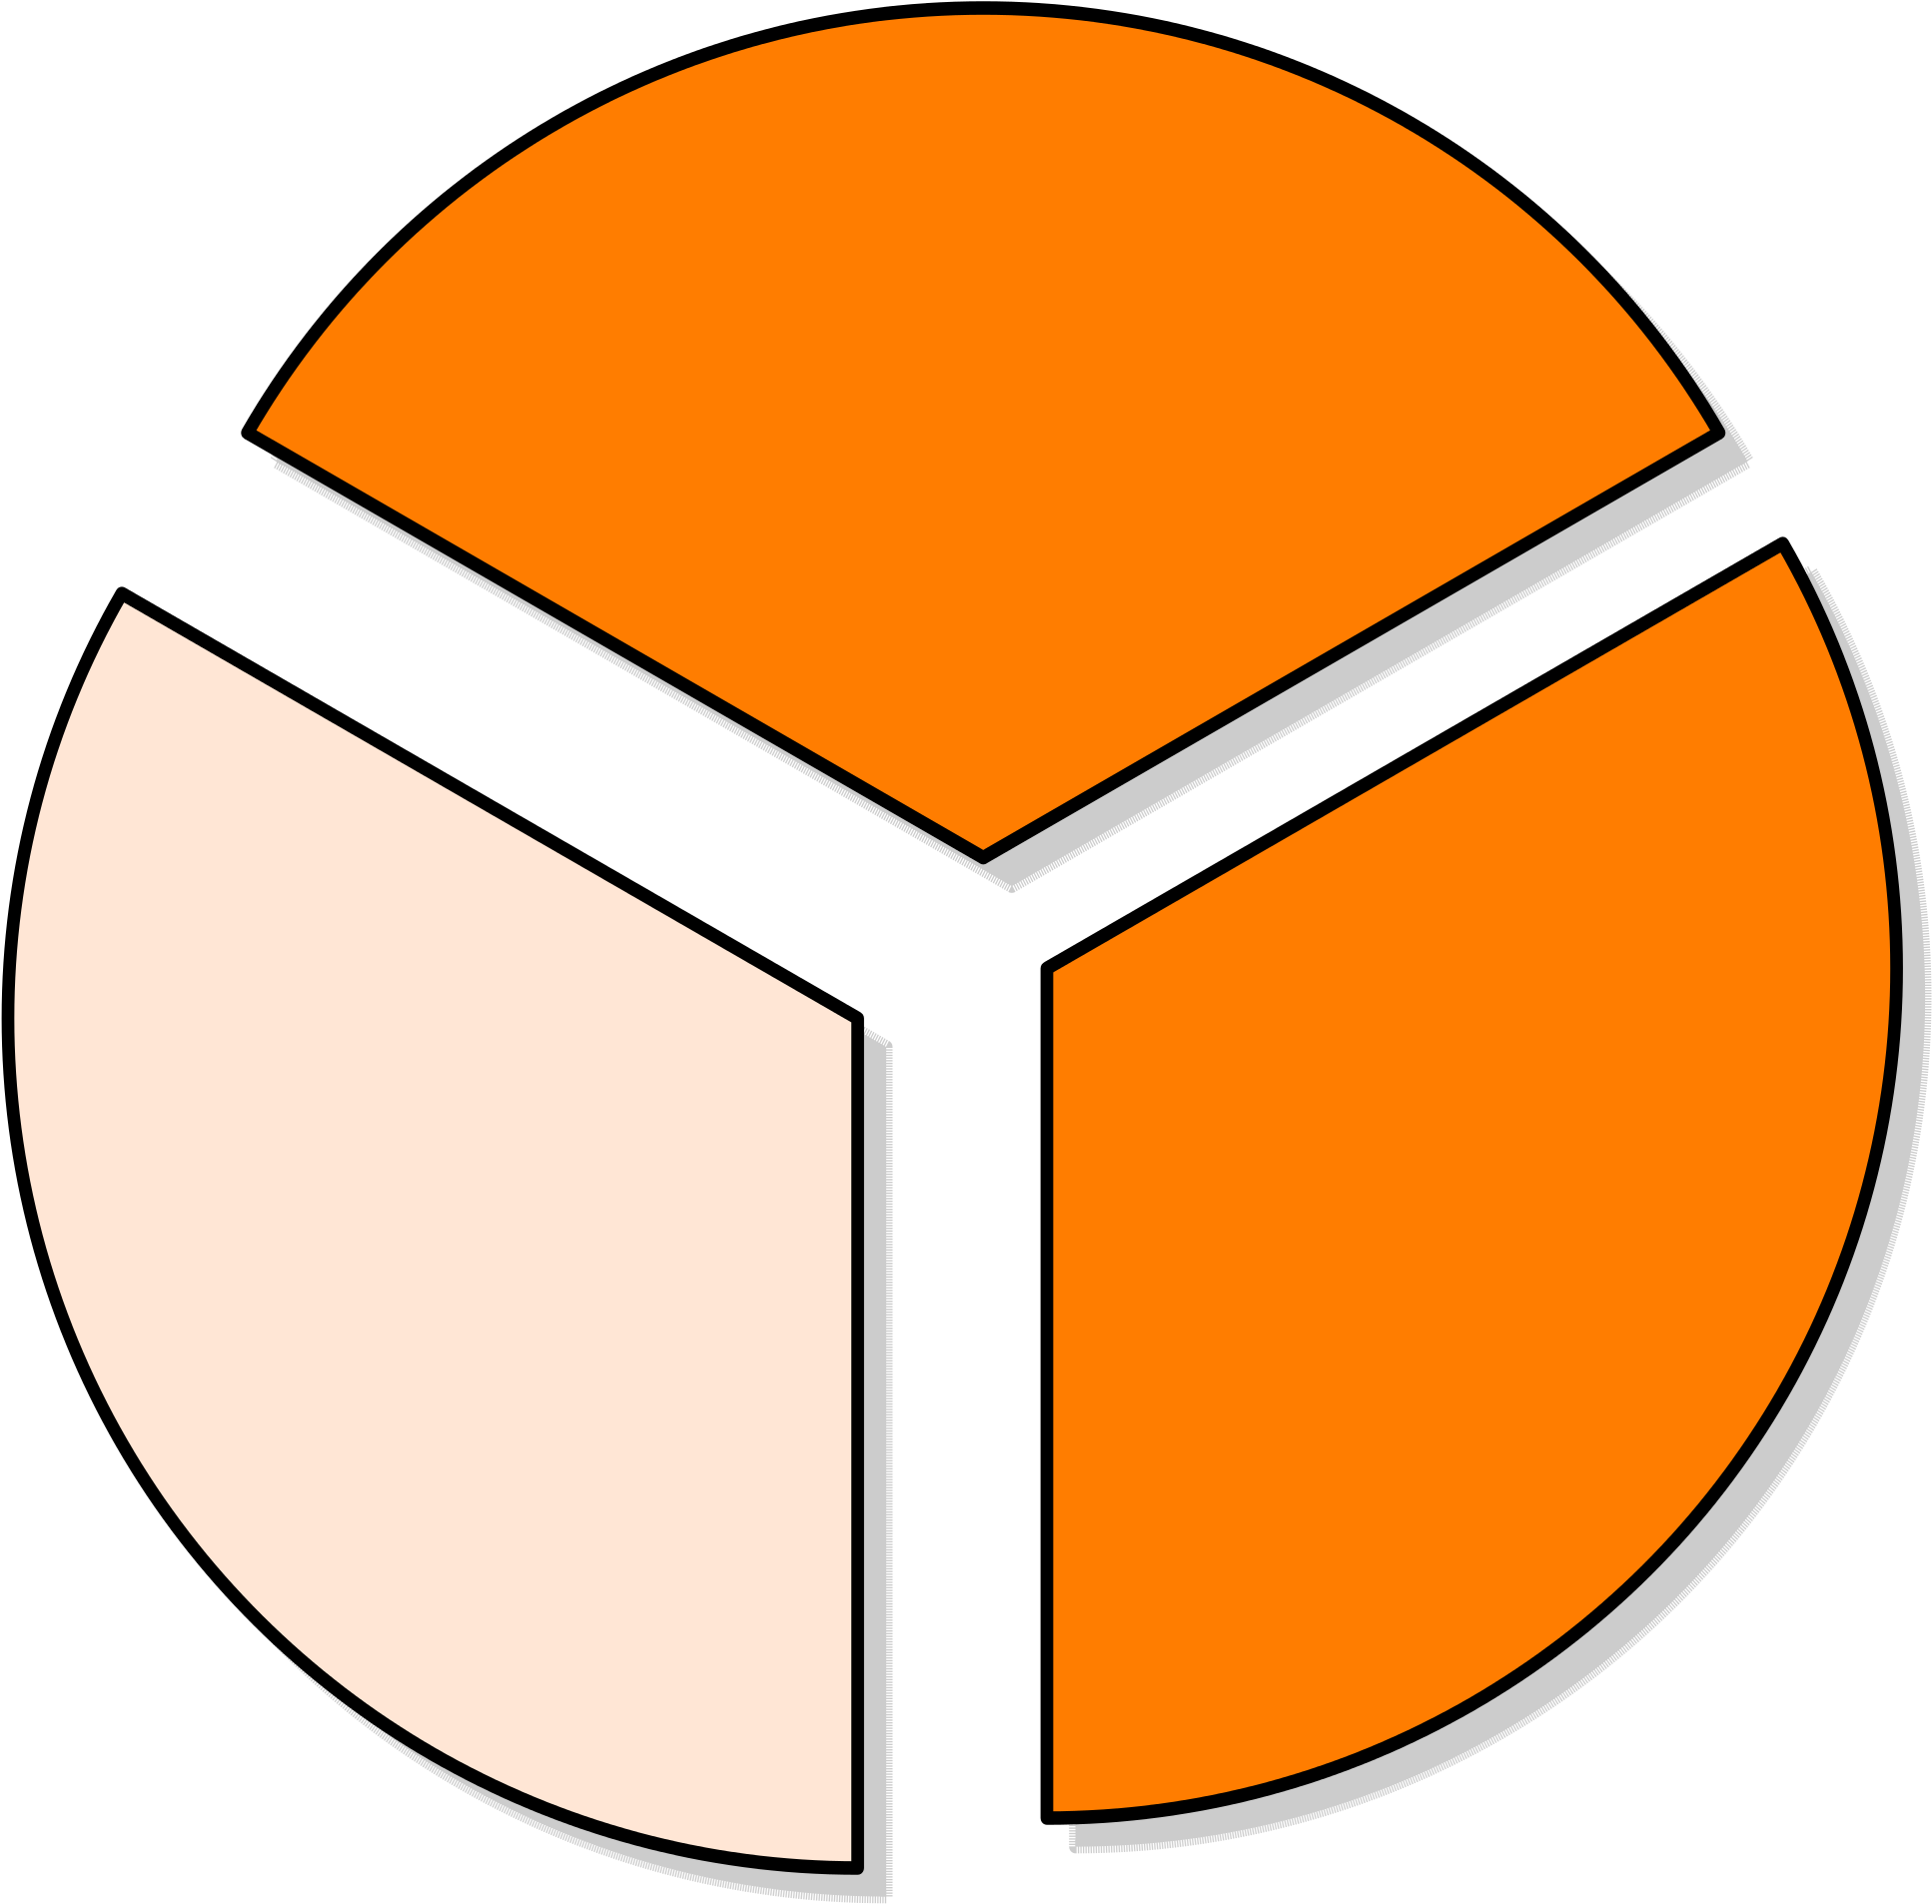 Collection Of Pie Chart Cliparts.